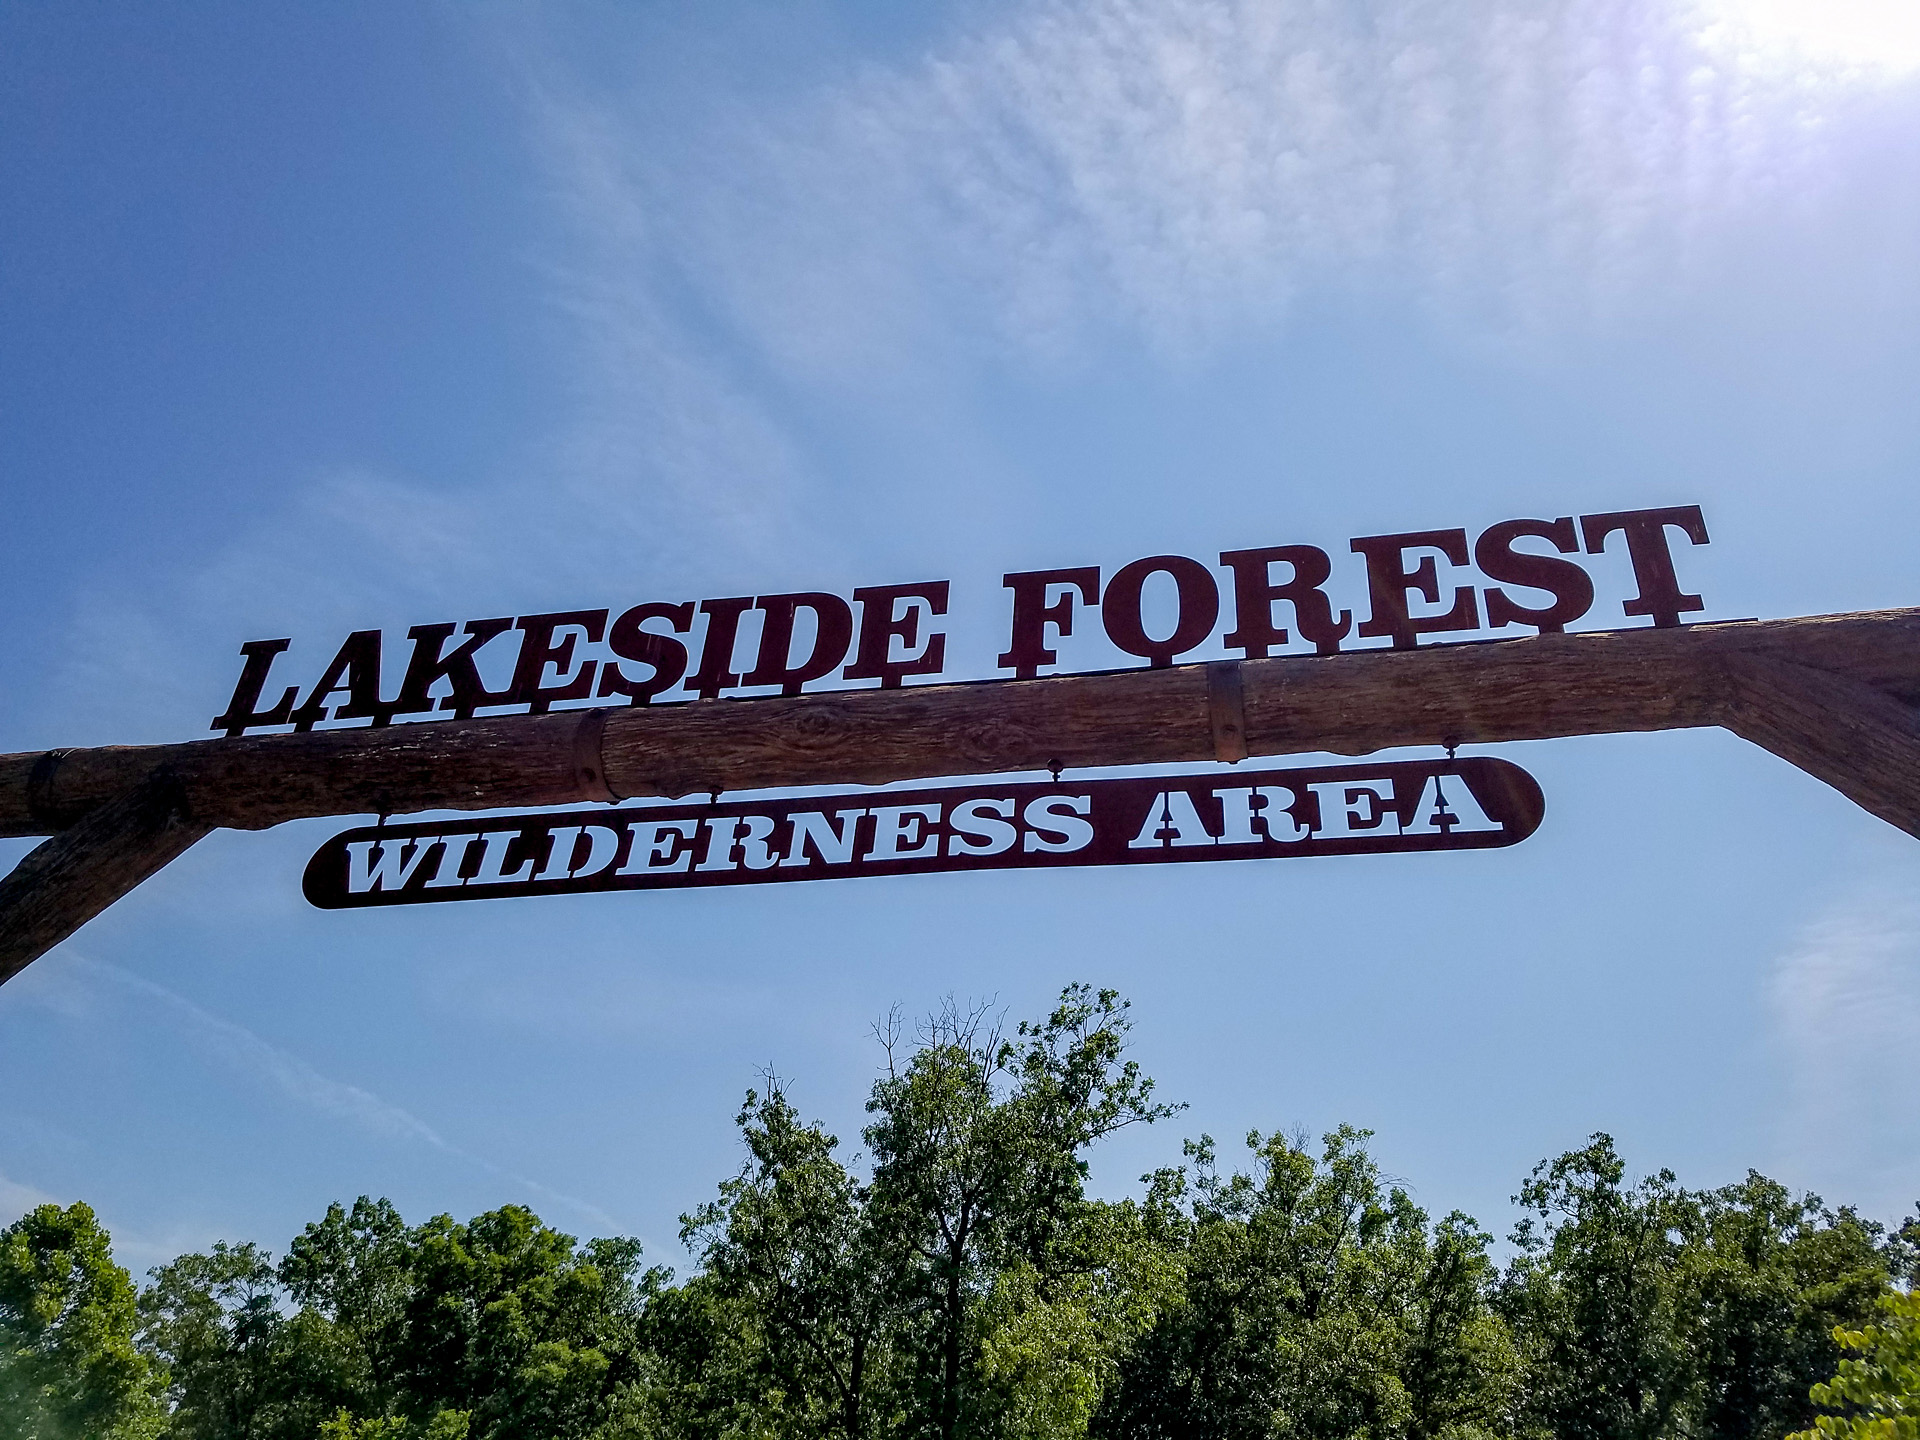 Lakeside forrest wilderness area Branson MO (1).jpg